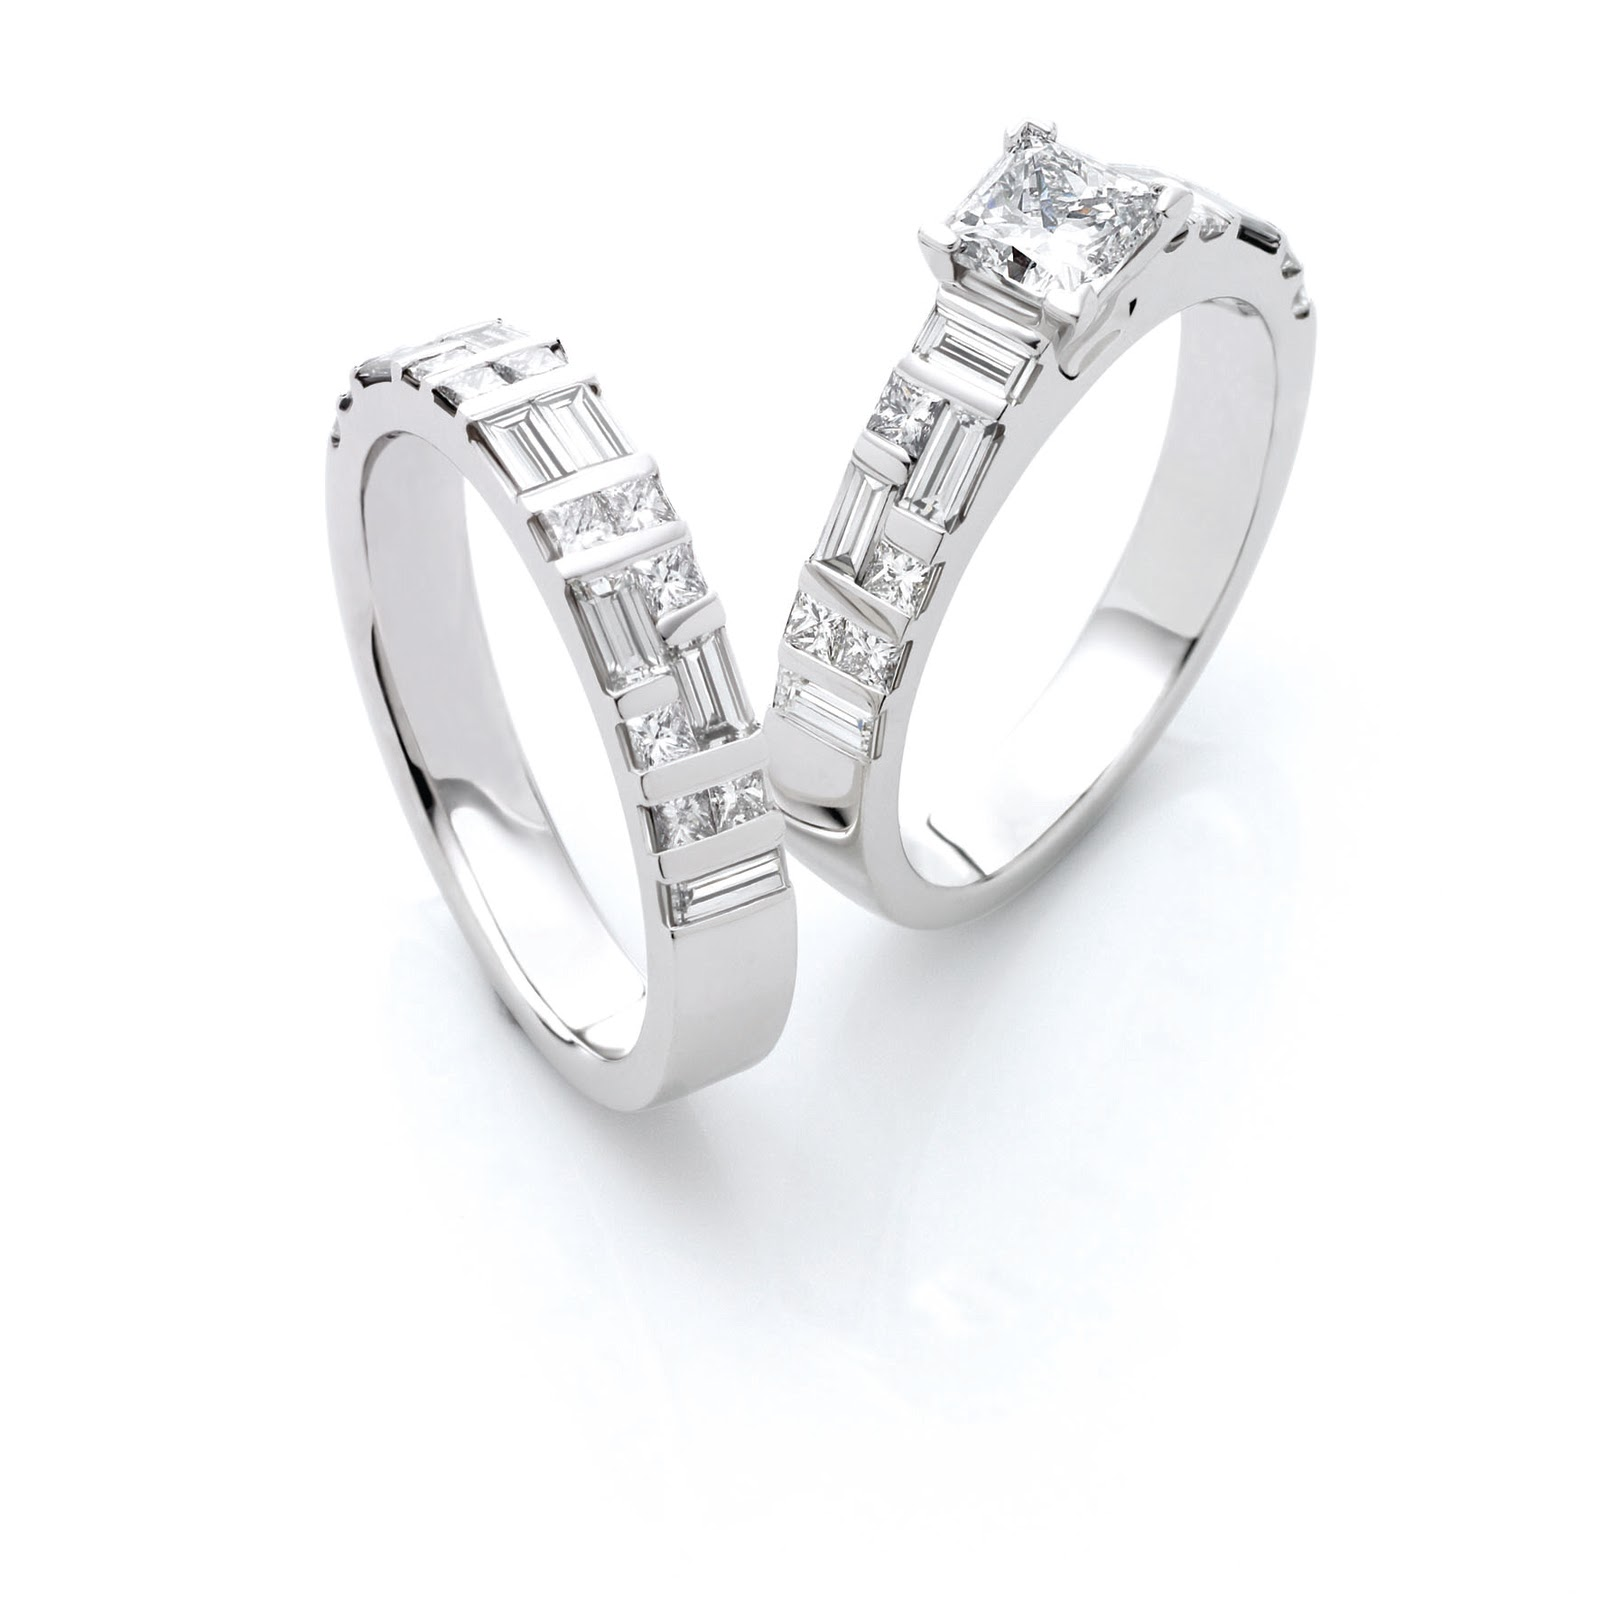 parvins blog find a wedding ring that - Best Wedding Rings